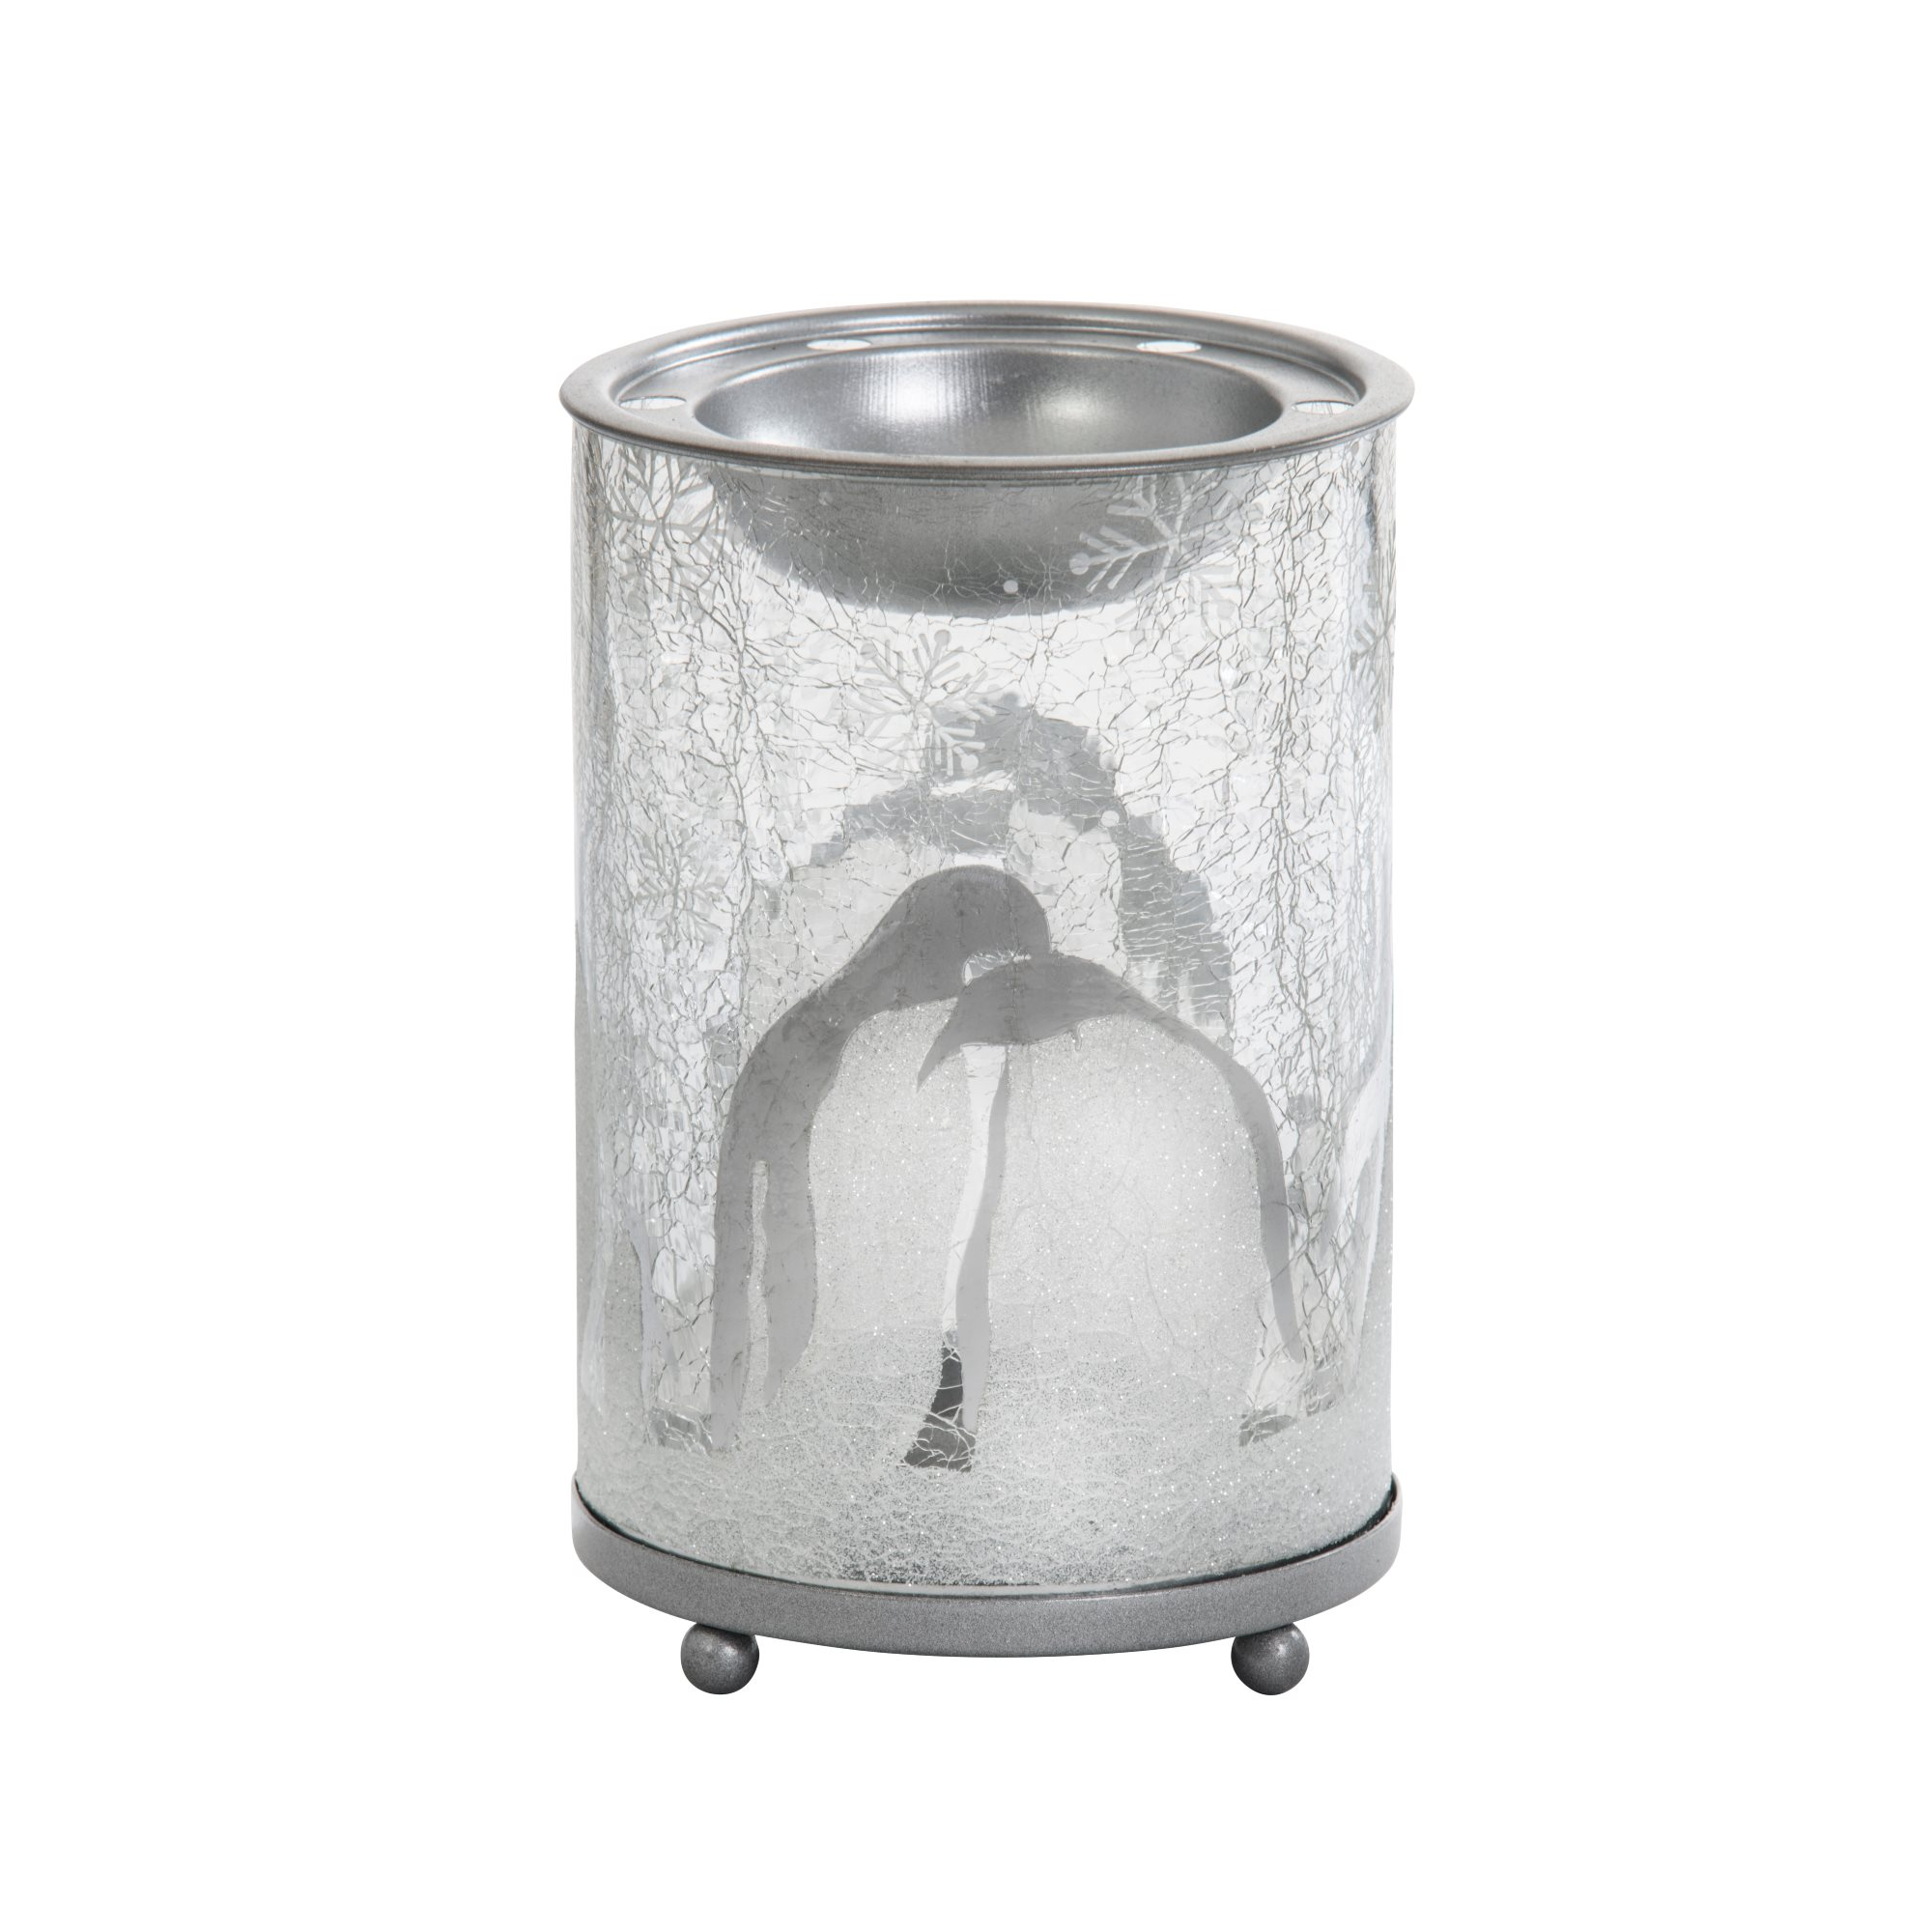 yankee candle melt warmer penguin crackle duftlampe ebay. Black Bedroom Furniture Sets. Home Design Ideas